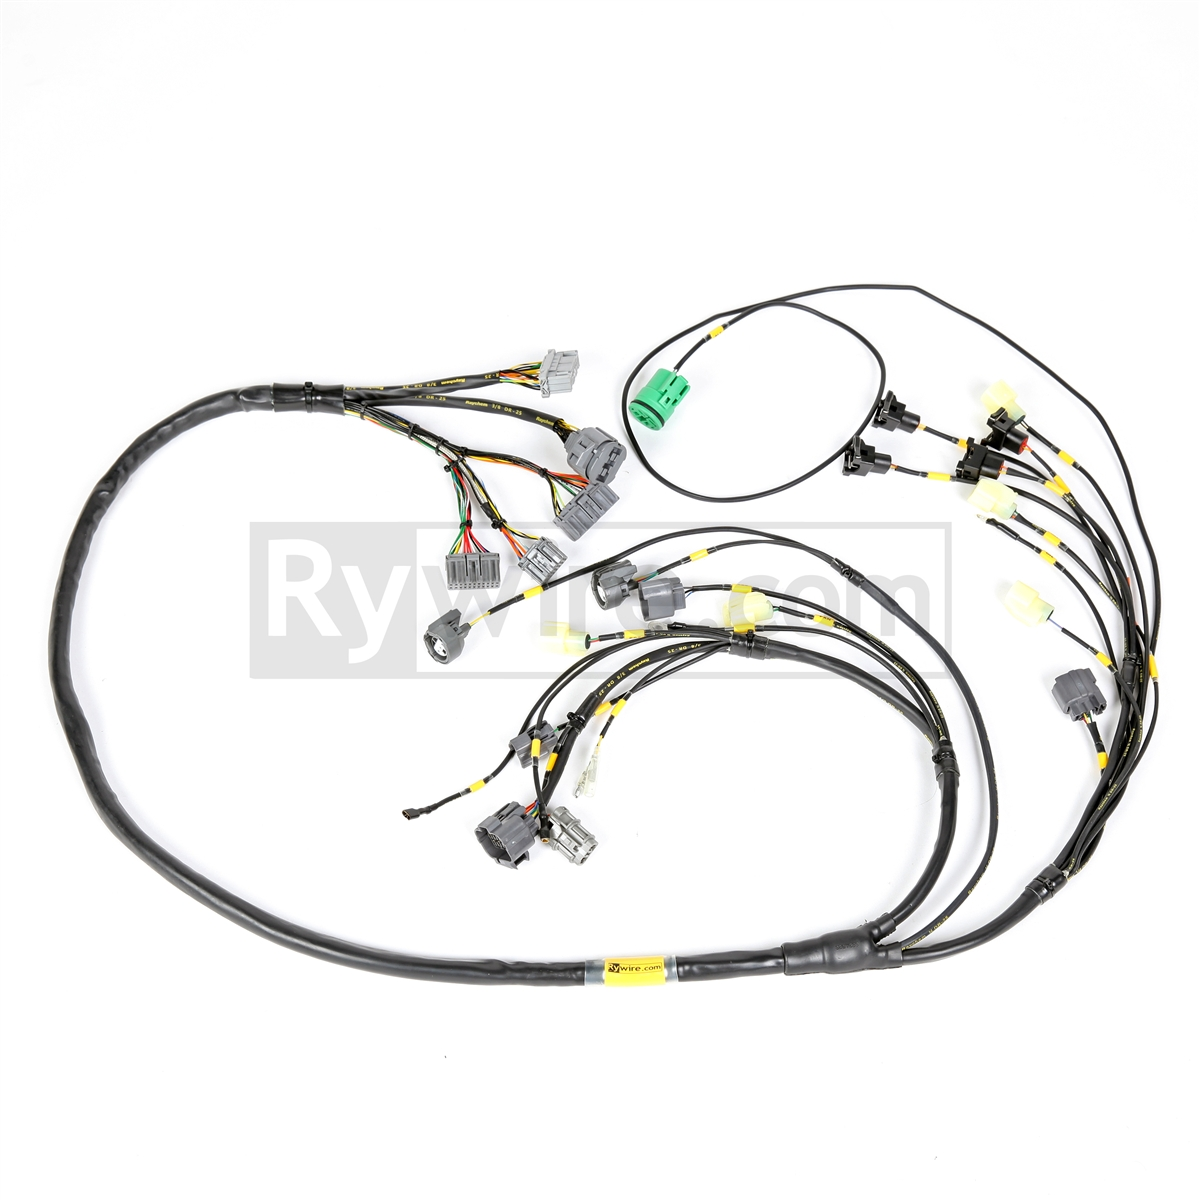 H22a1 Distributor Wiring Diagram Library Wire Harness